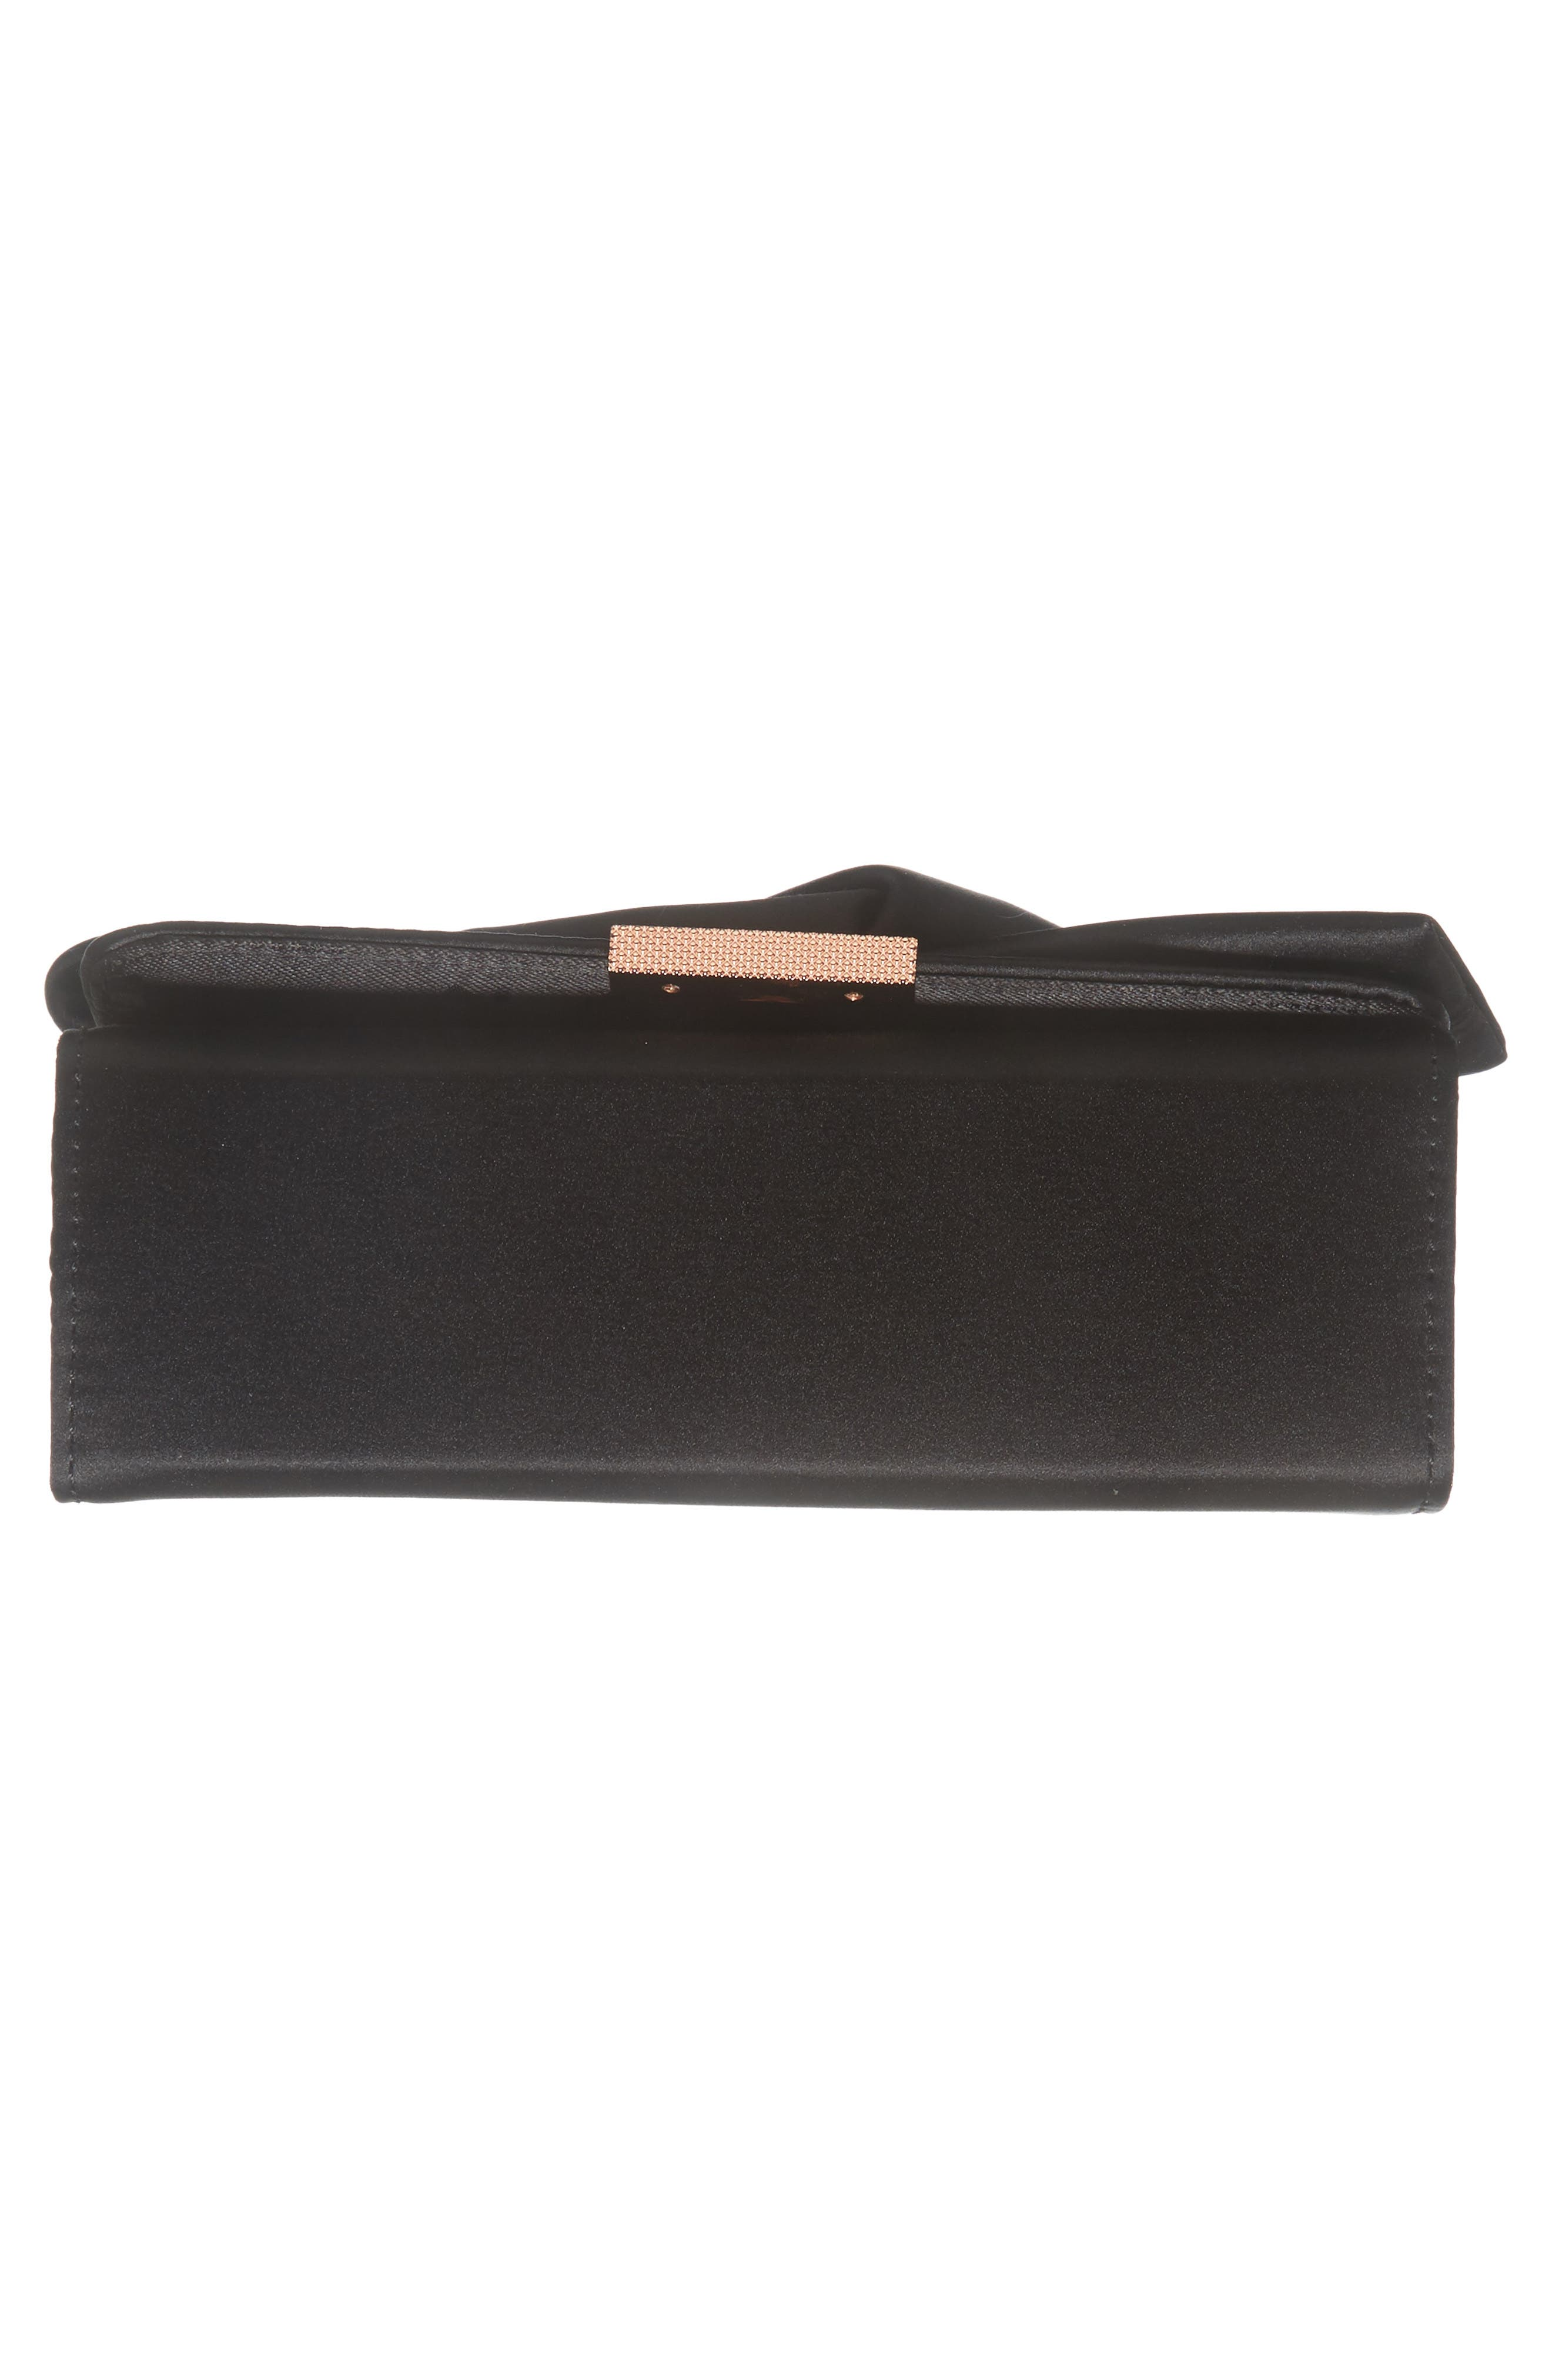 Fefee Satin Knotted Bow Clutch,                             Alternate thumbnail 6, color,                             001